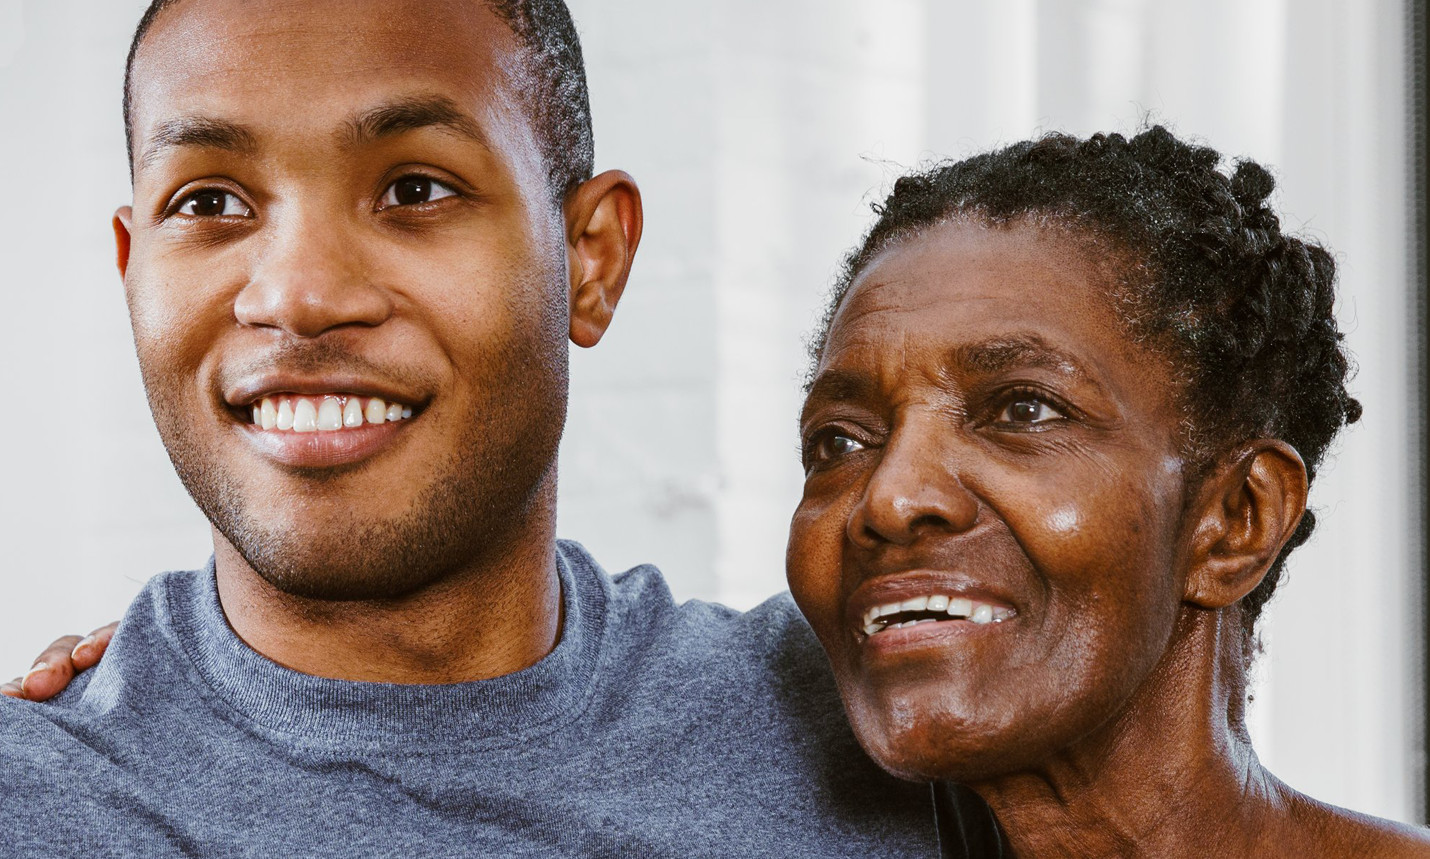 Visit with Parents More Often to Help Them Live Longer